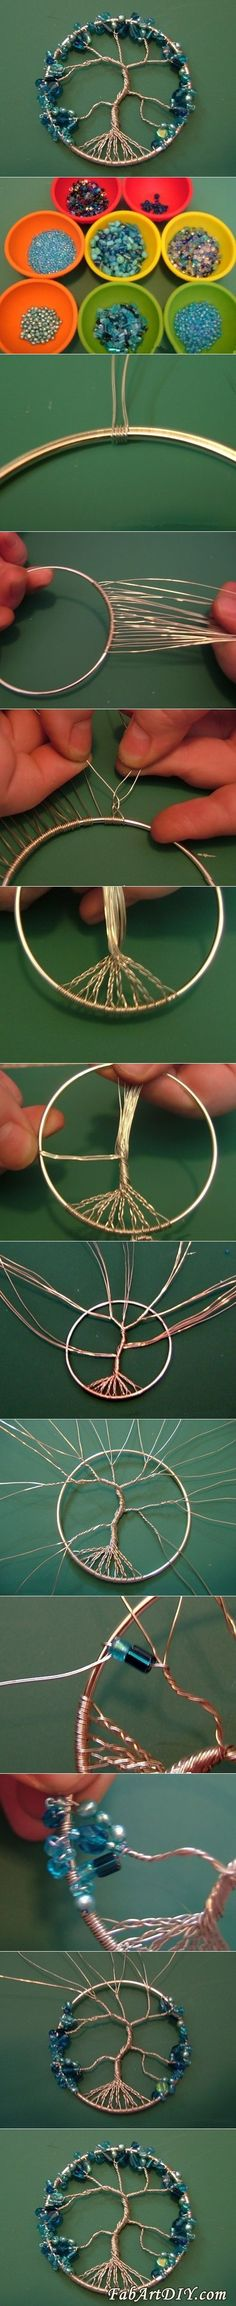 dream catcher tutorials More